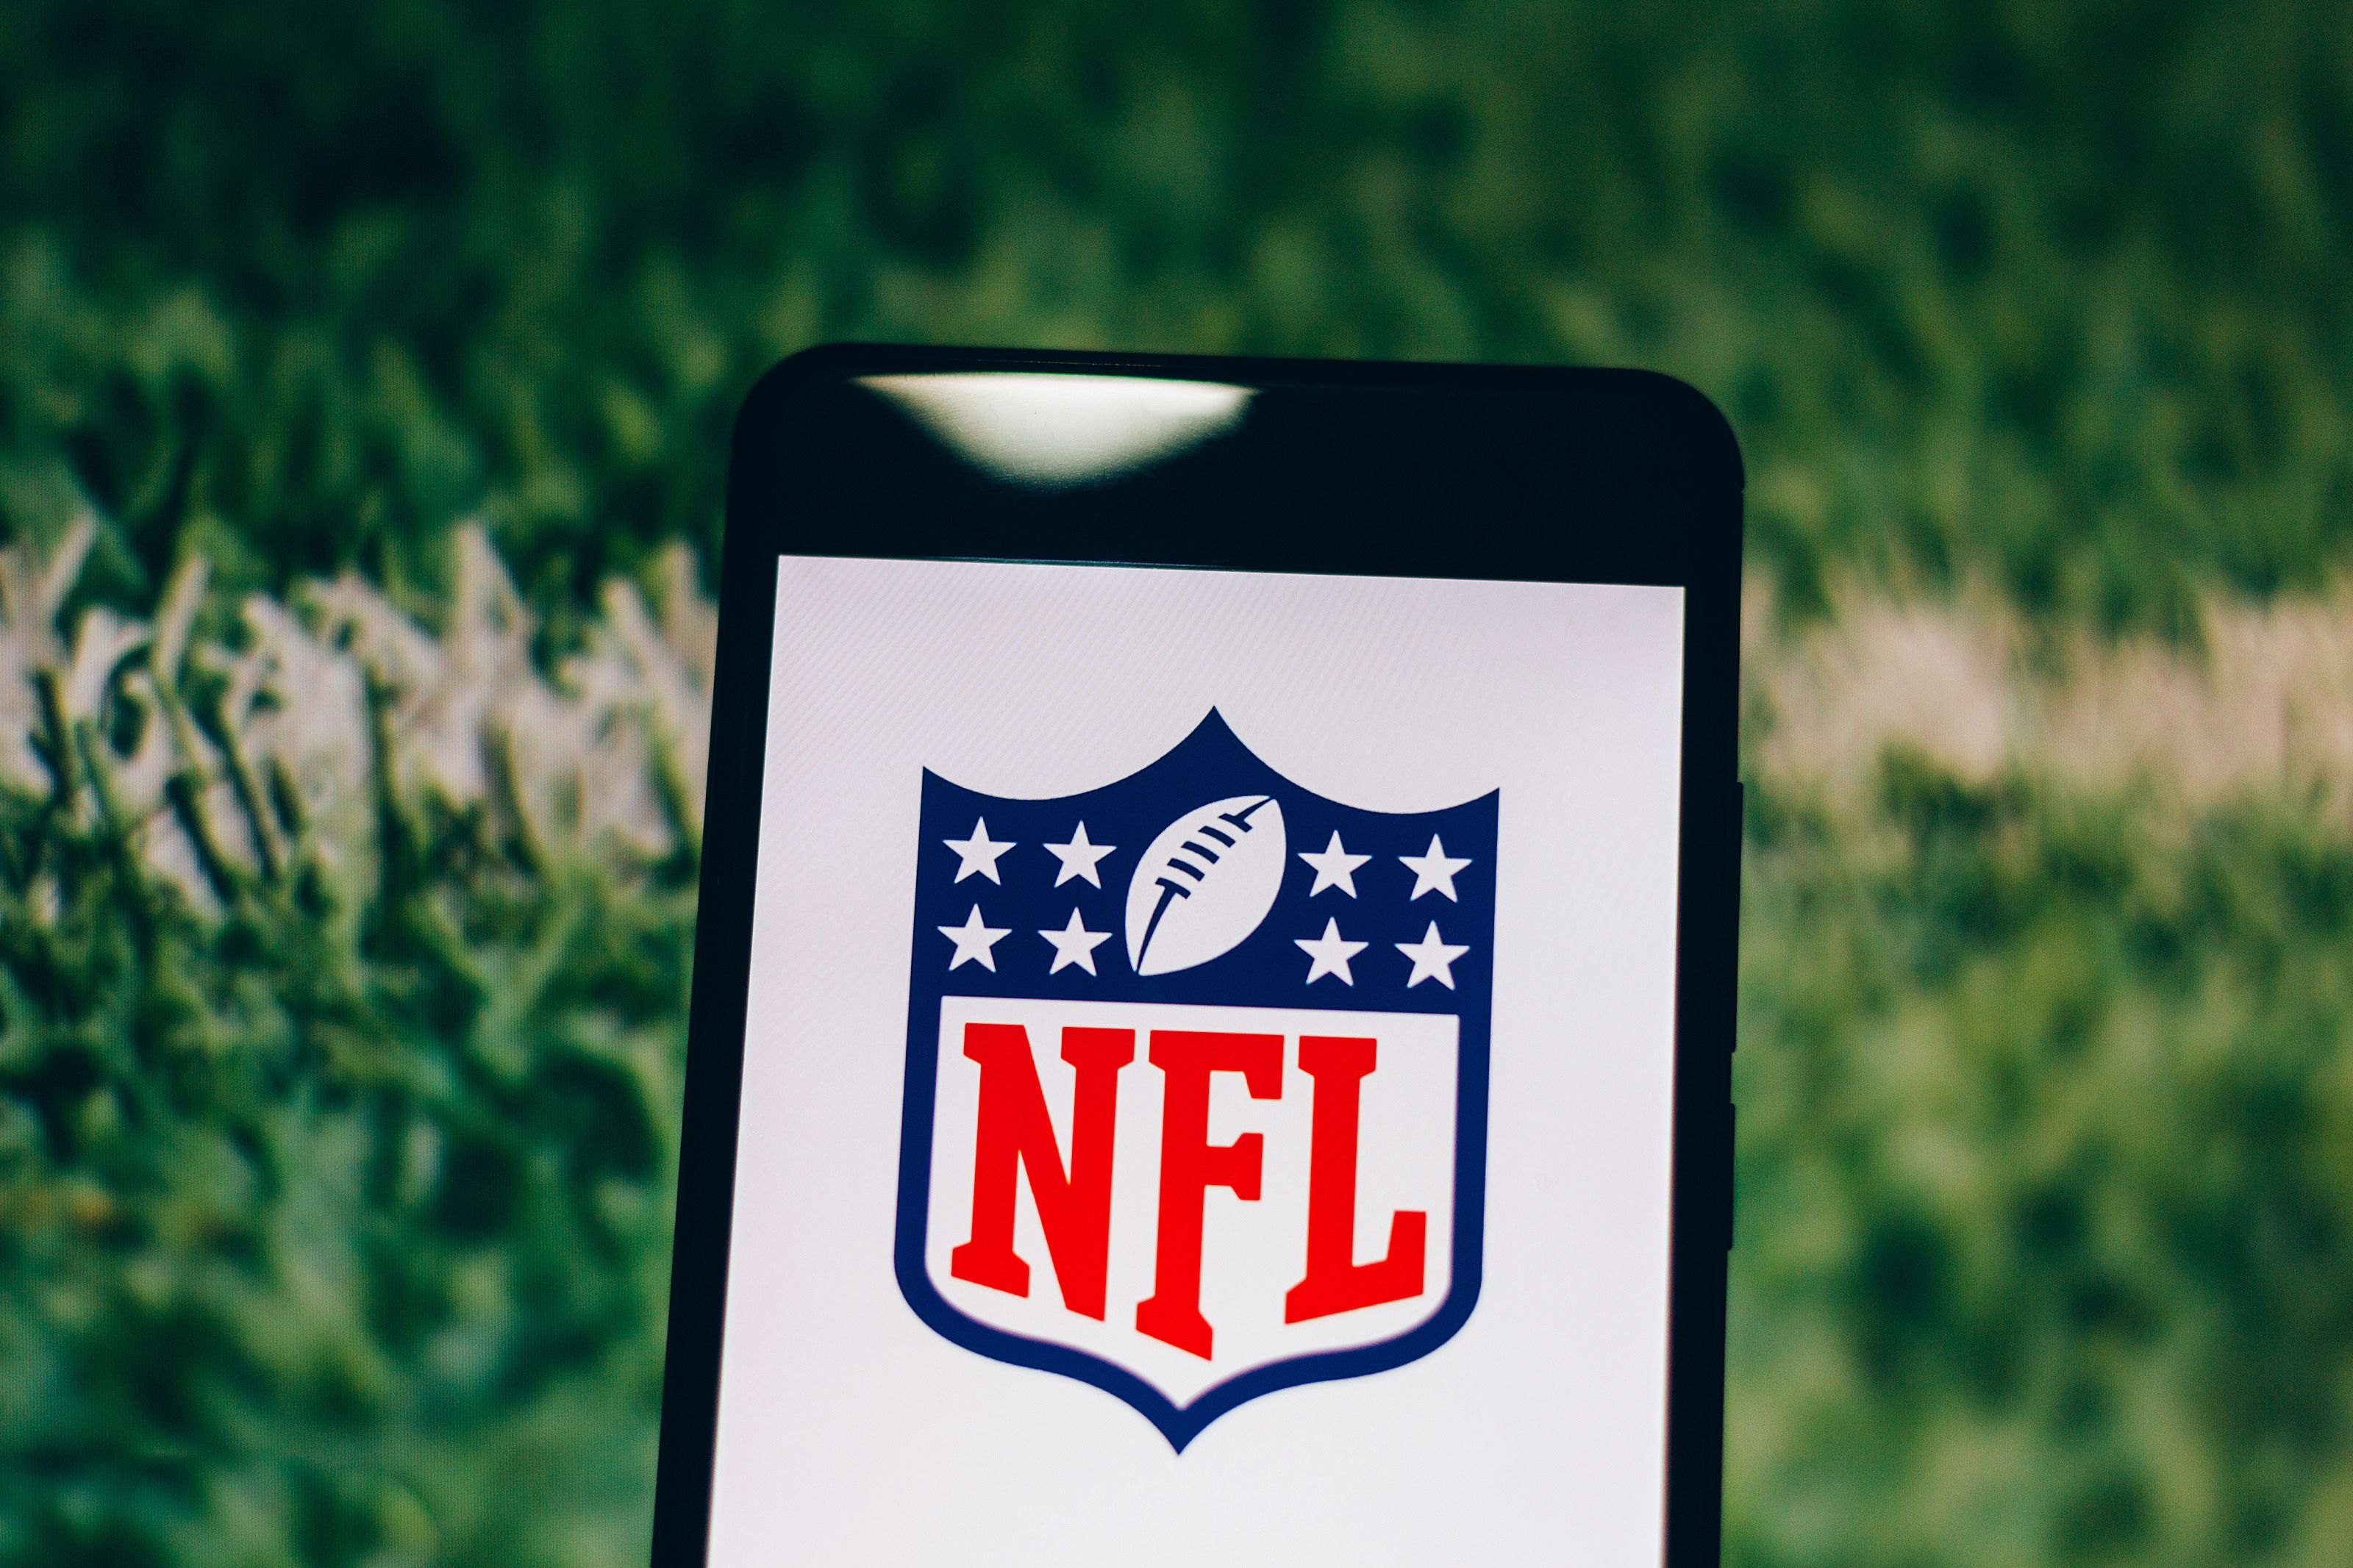 BRAZIL - 2019/04/04: In this photo illustration a National Football League logo seen displayed on a smartphone. (Photo Illustration by Rafael Henrique/SOPA Images/LightRocket via Getty Images)